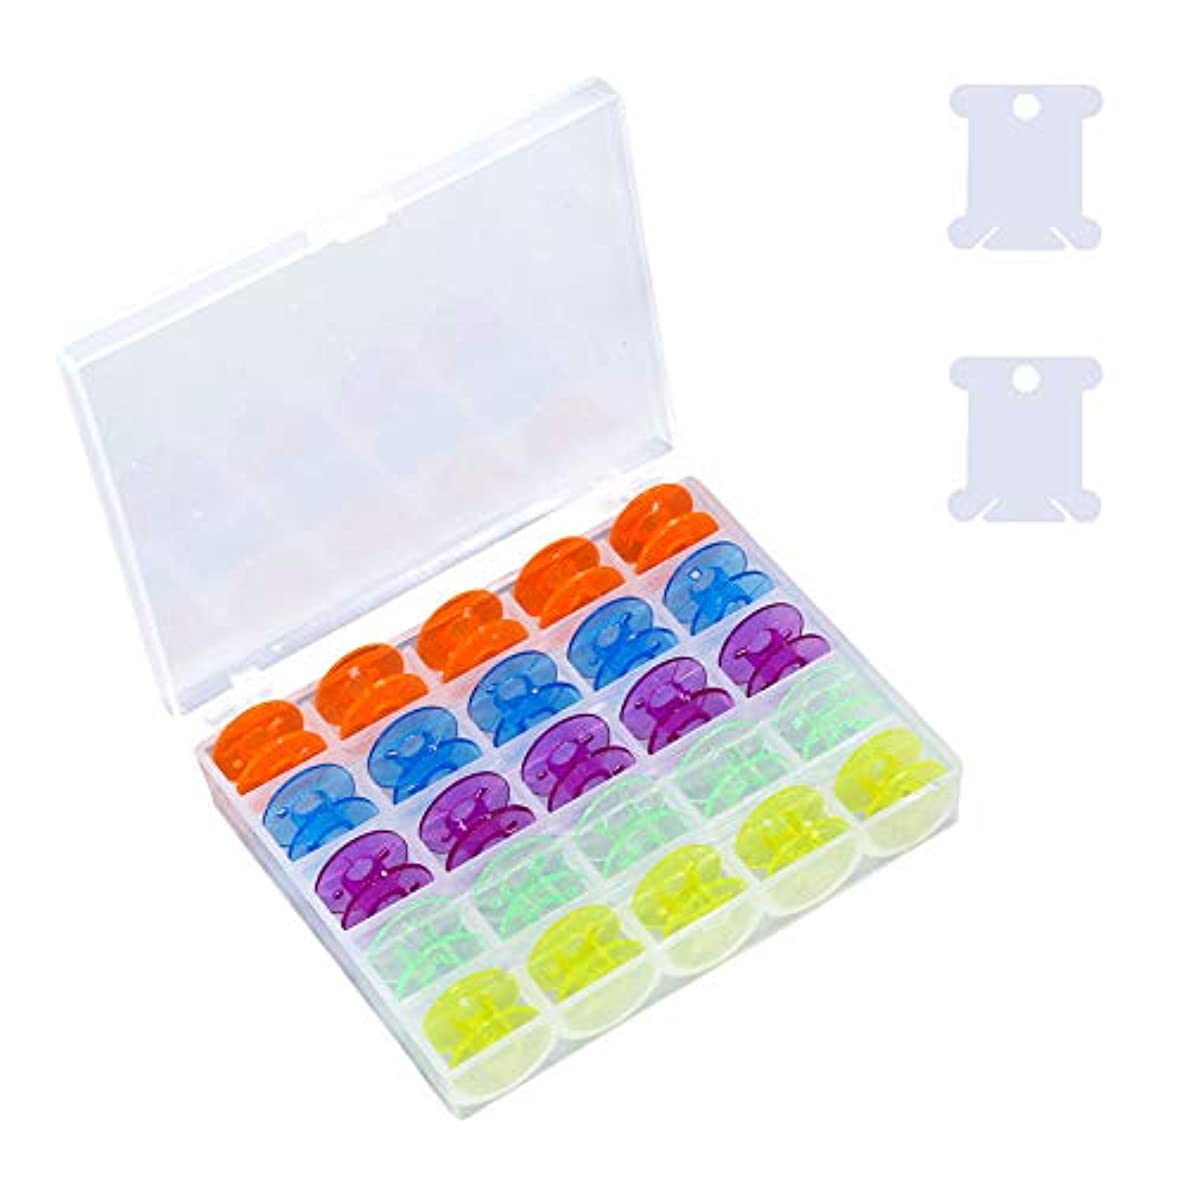 25Pcs Plastic Sewing Machine Bobbins with Storage Case and 2Pcs Floss Bossins, for Brother Singer Janome Kenmore, Assorted Colors